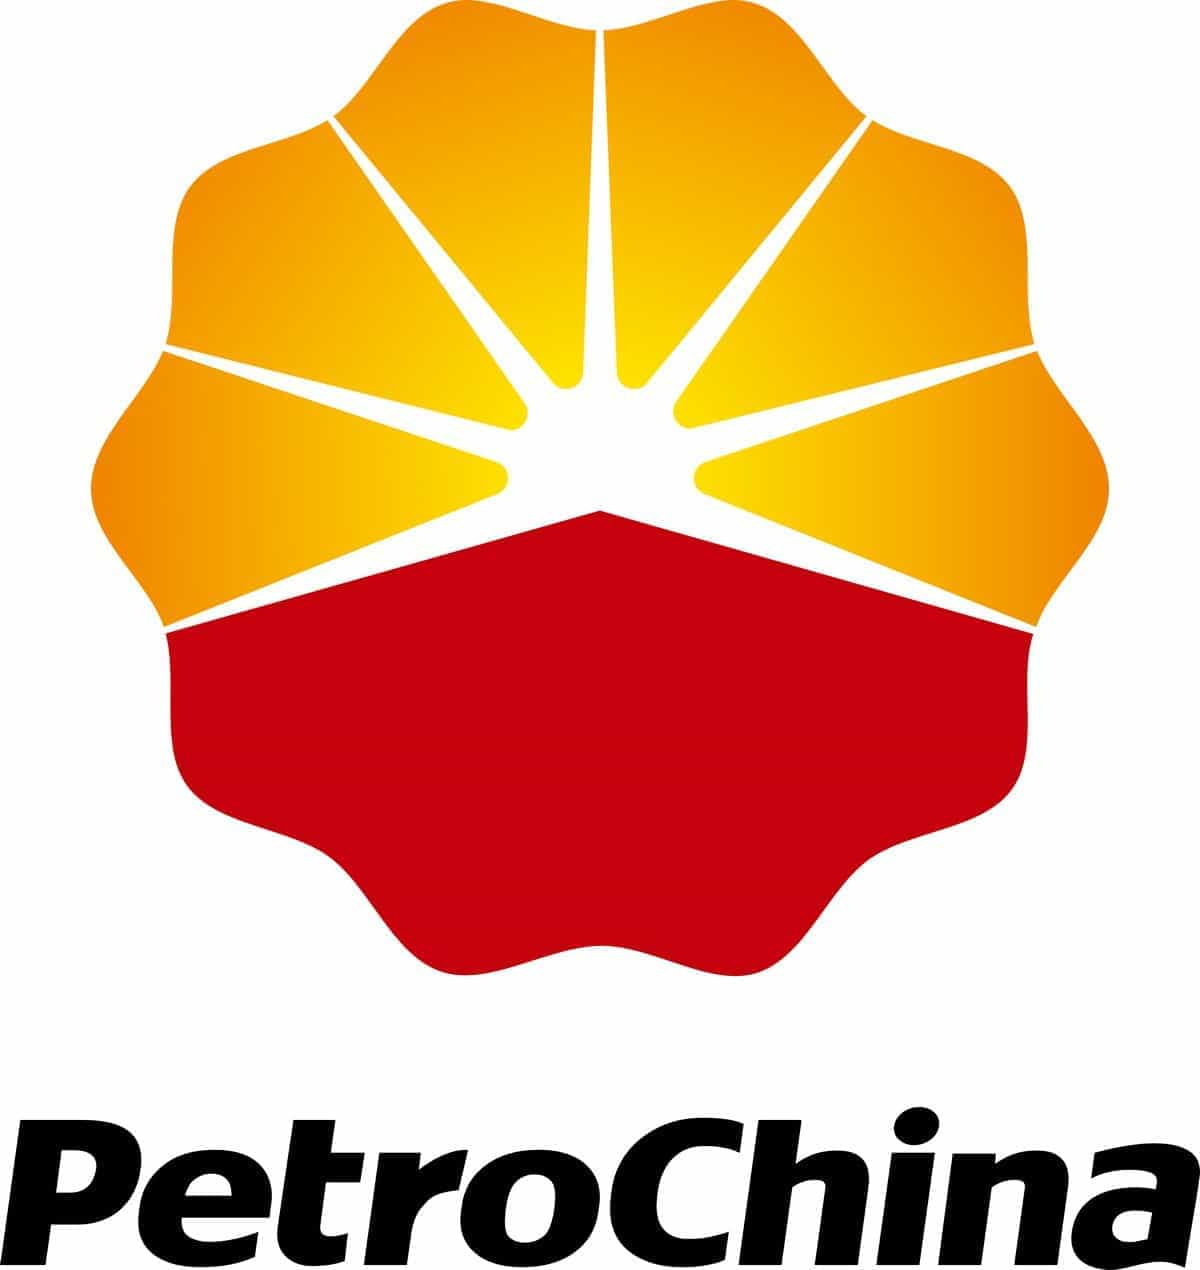 Marketing Mix of PetroChina